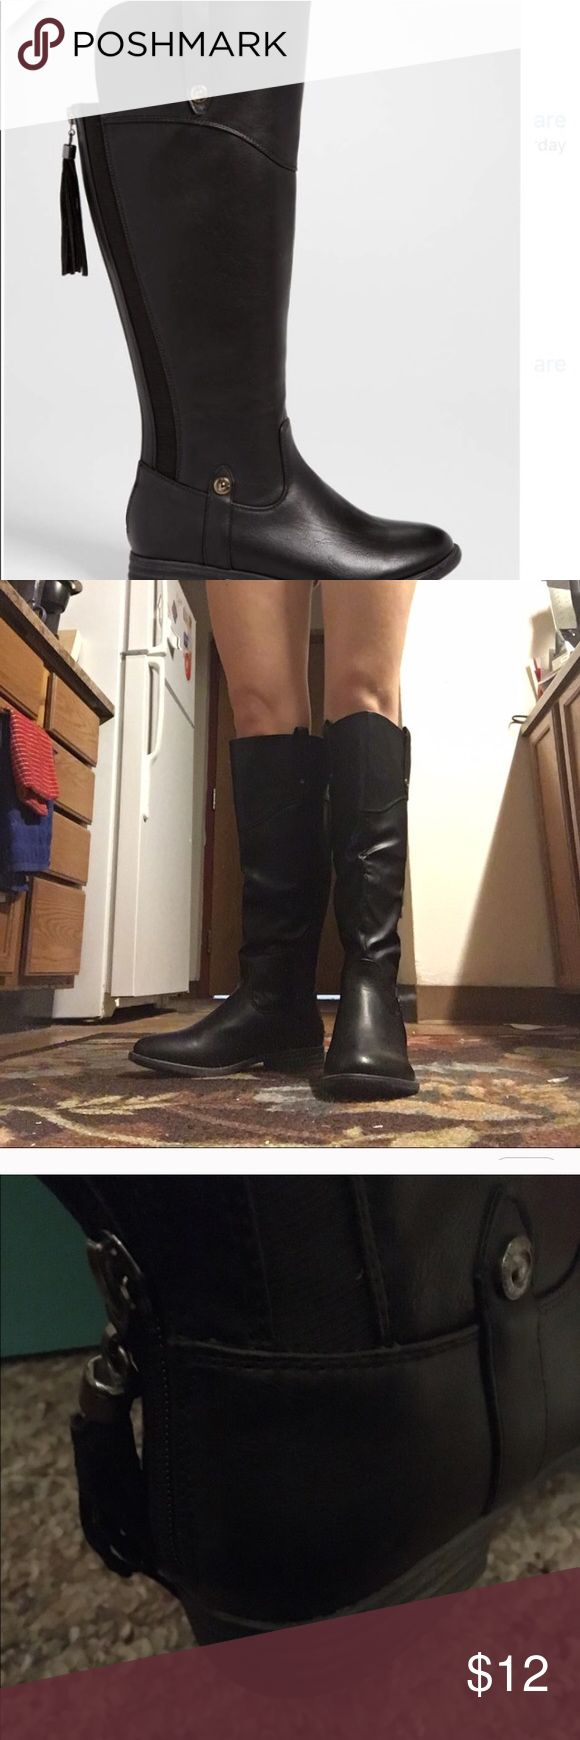 New Black Tassle boots New black Tassel boots. Maurices Shoes Winter & Rain Boots